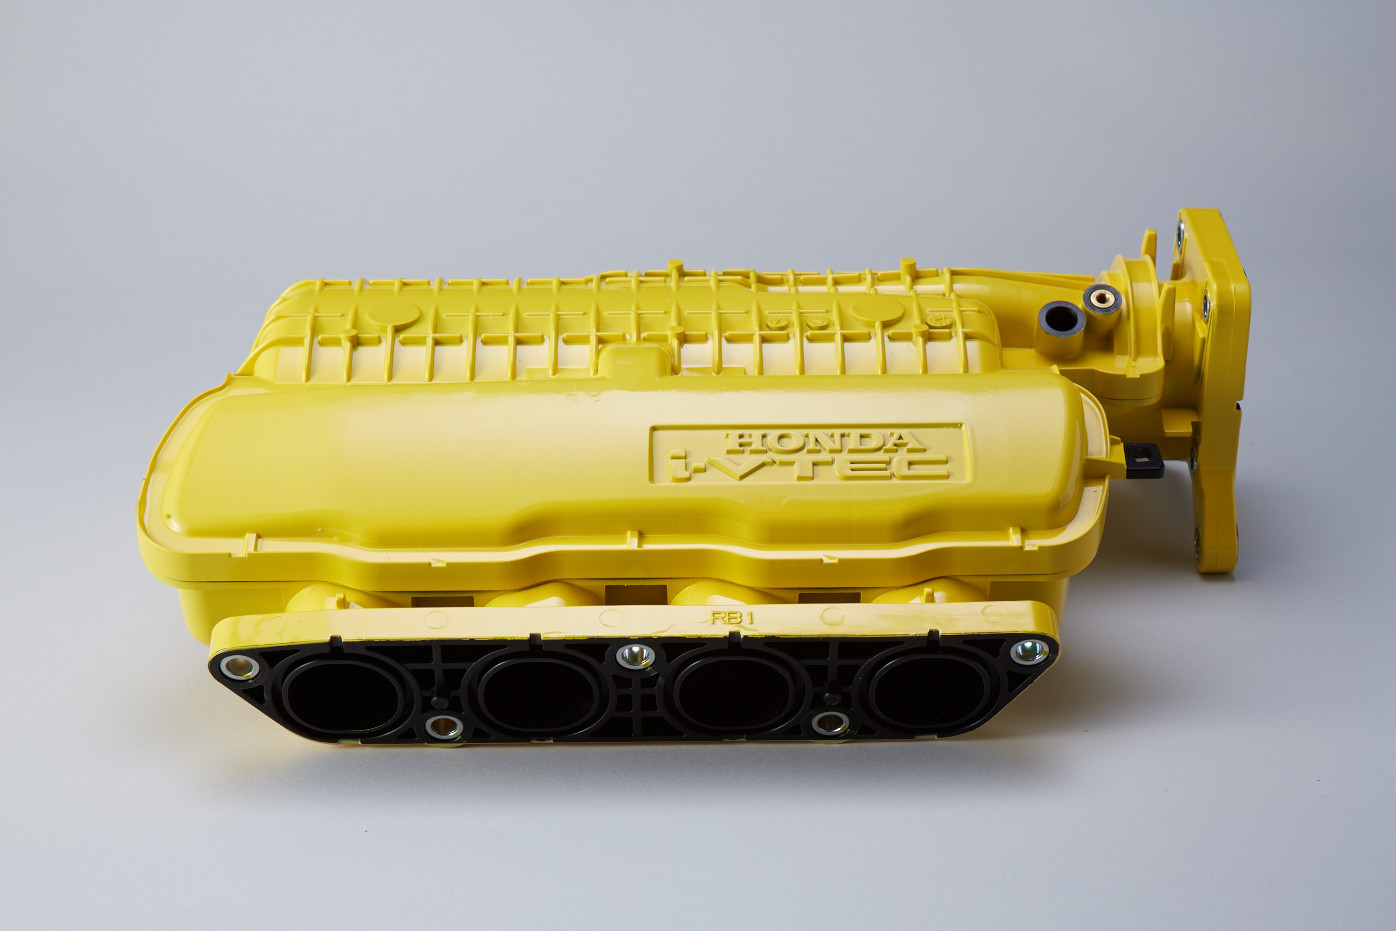 SPOON SPORTS スプーン スポーツ フィット GE8 前期/後期 INTAKE CHAMBER YELLOW インテークチャンバー イエロー 17110-GE8-Y00 配送先条件有り